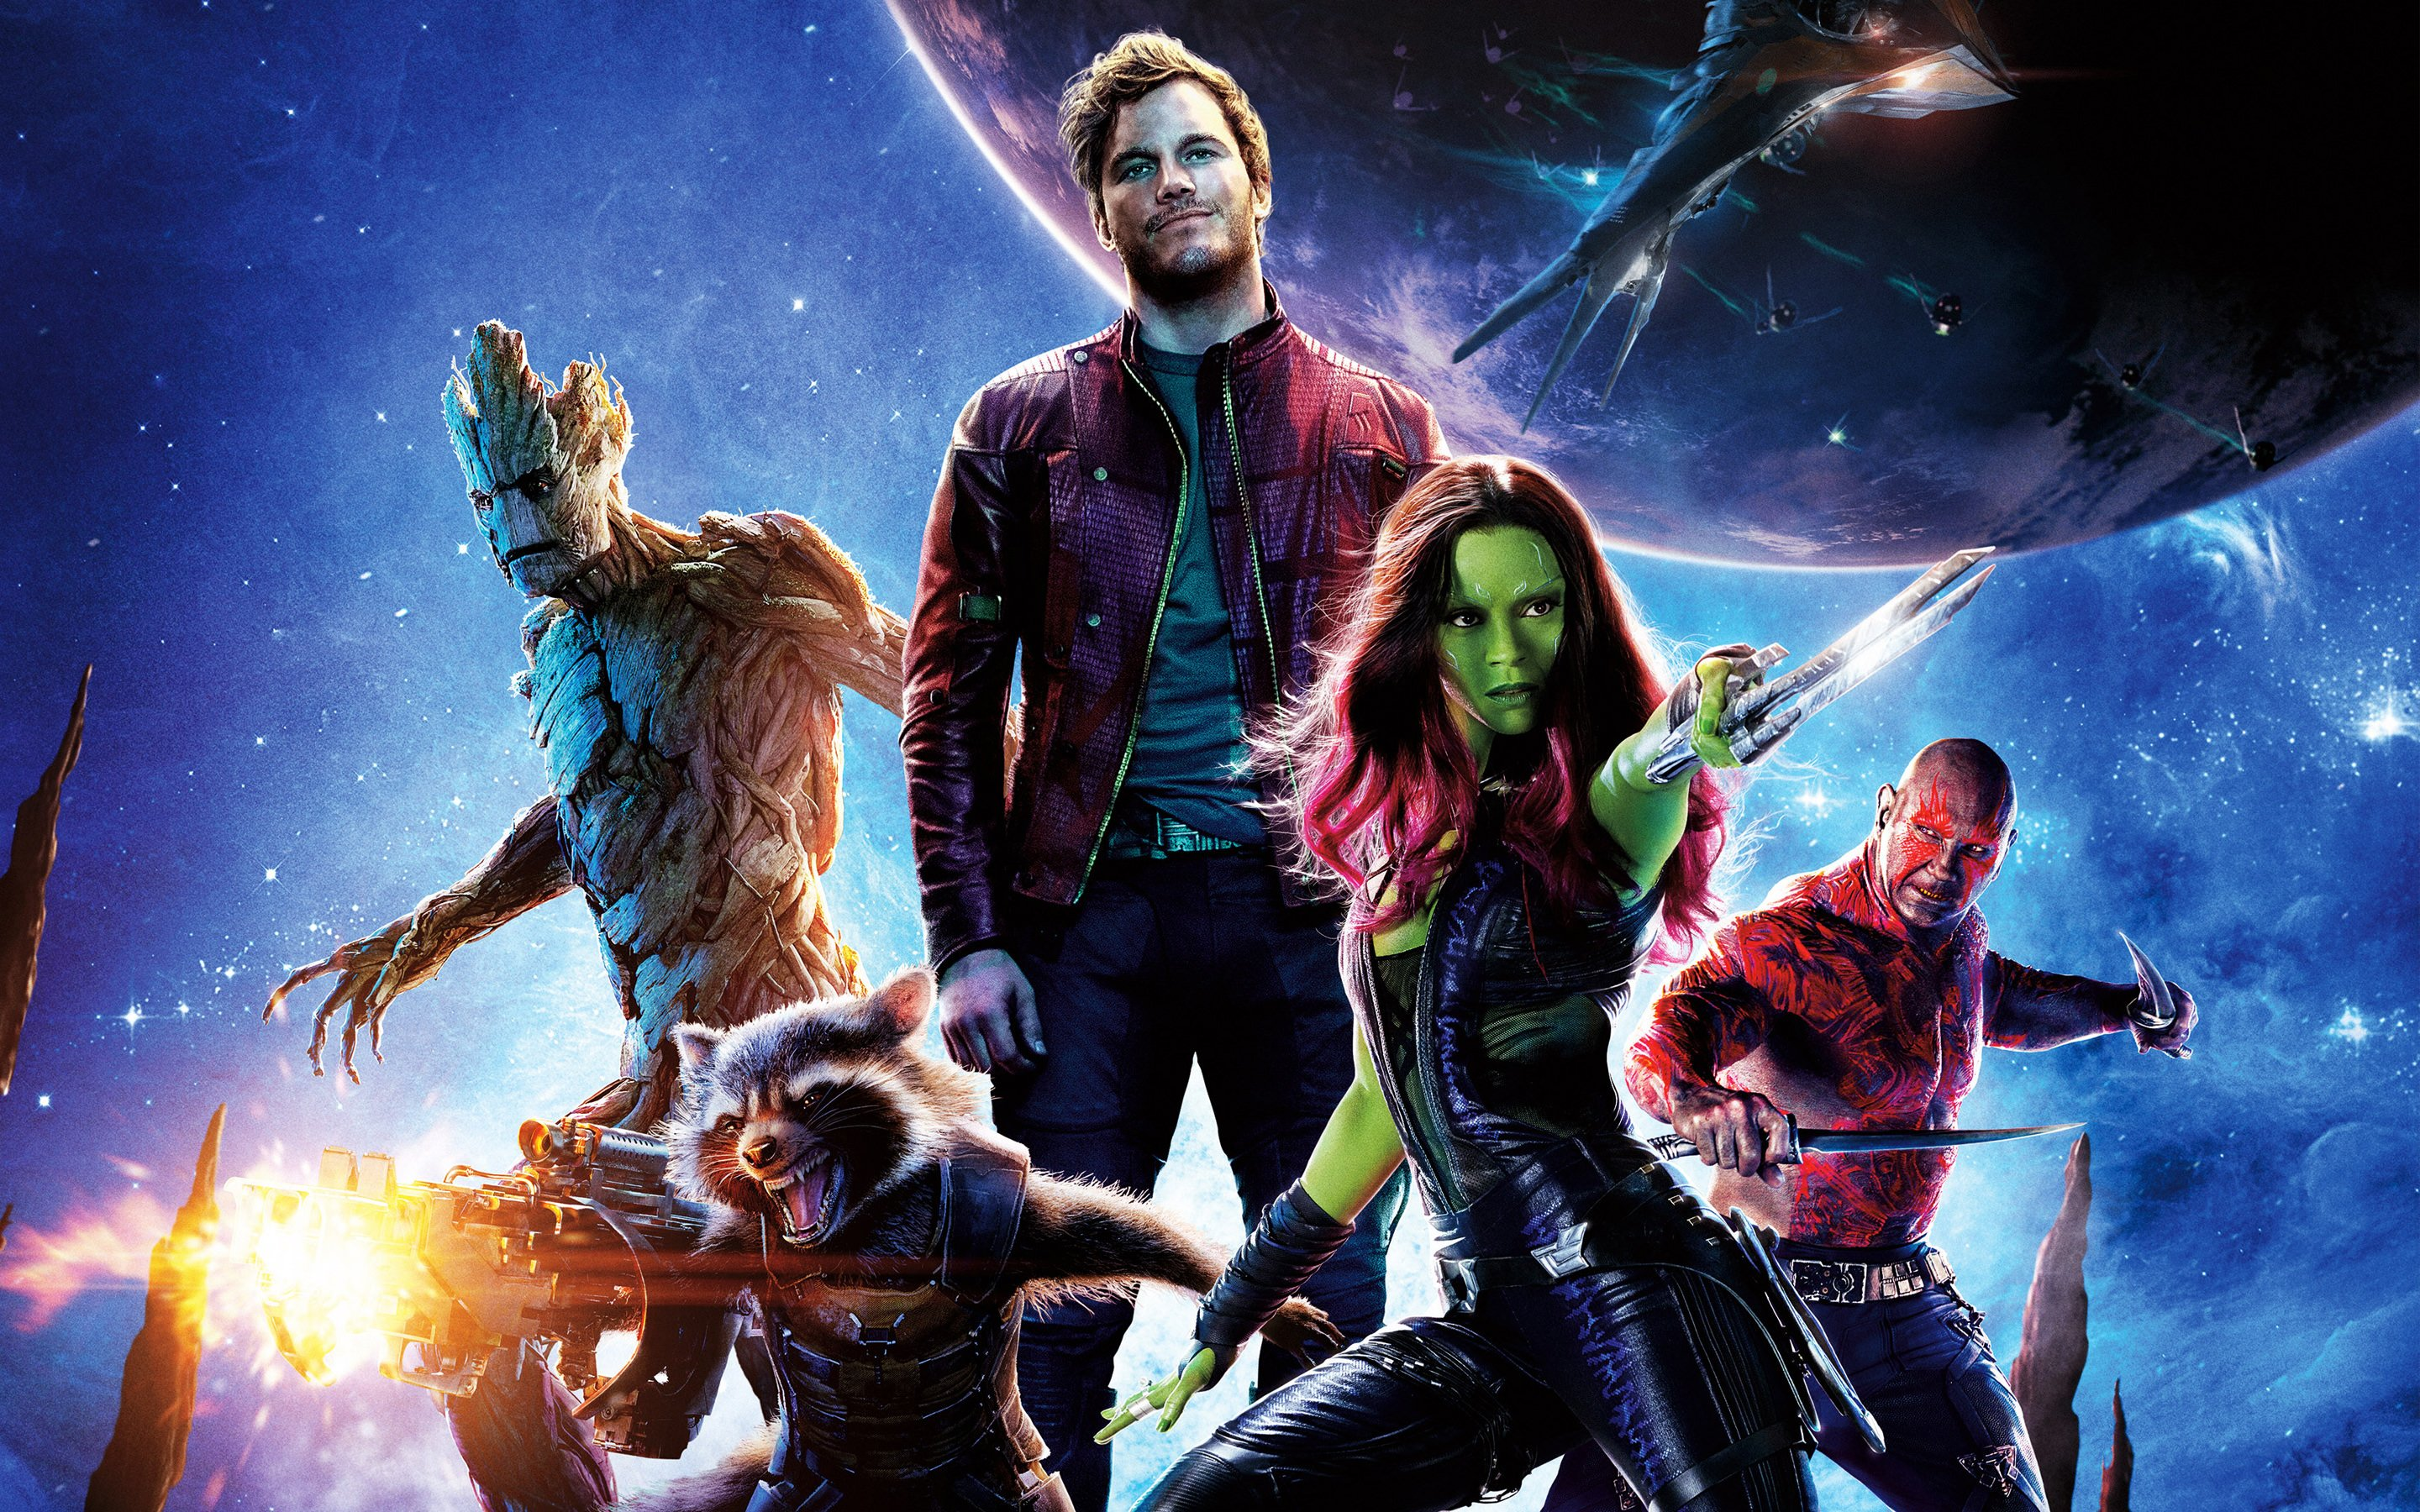 Guardians of the Galaxy Wallpaper for Desktop 2880x1800